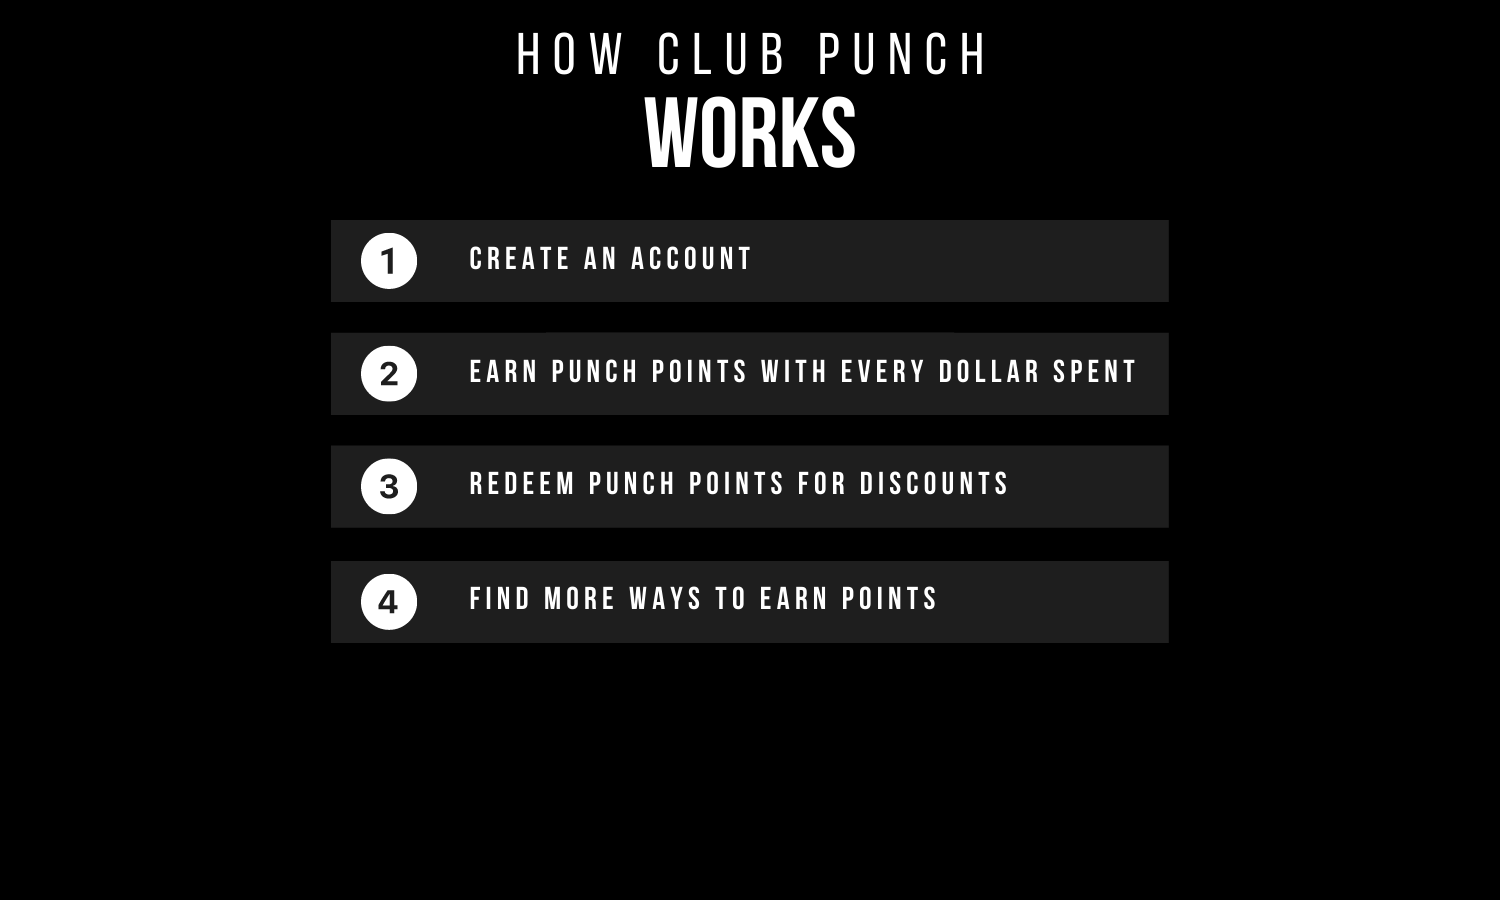 How Club Punch Works